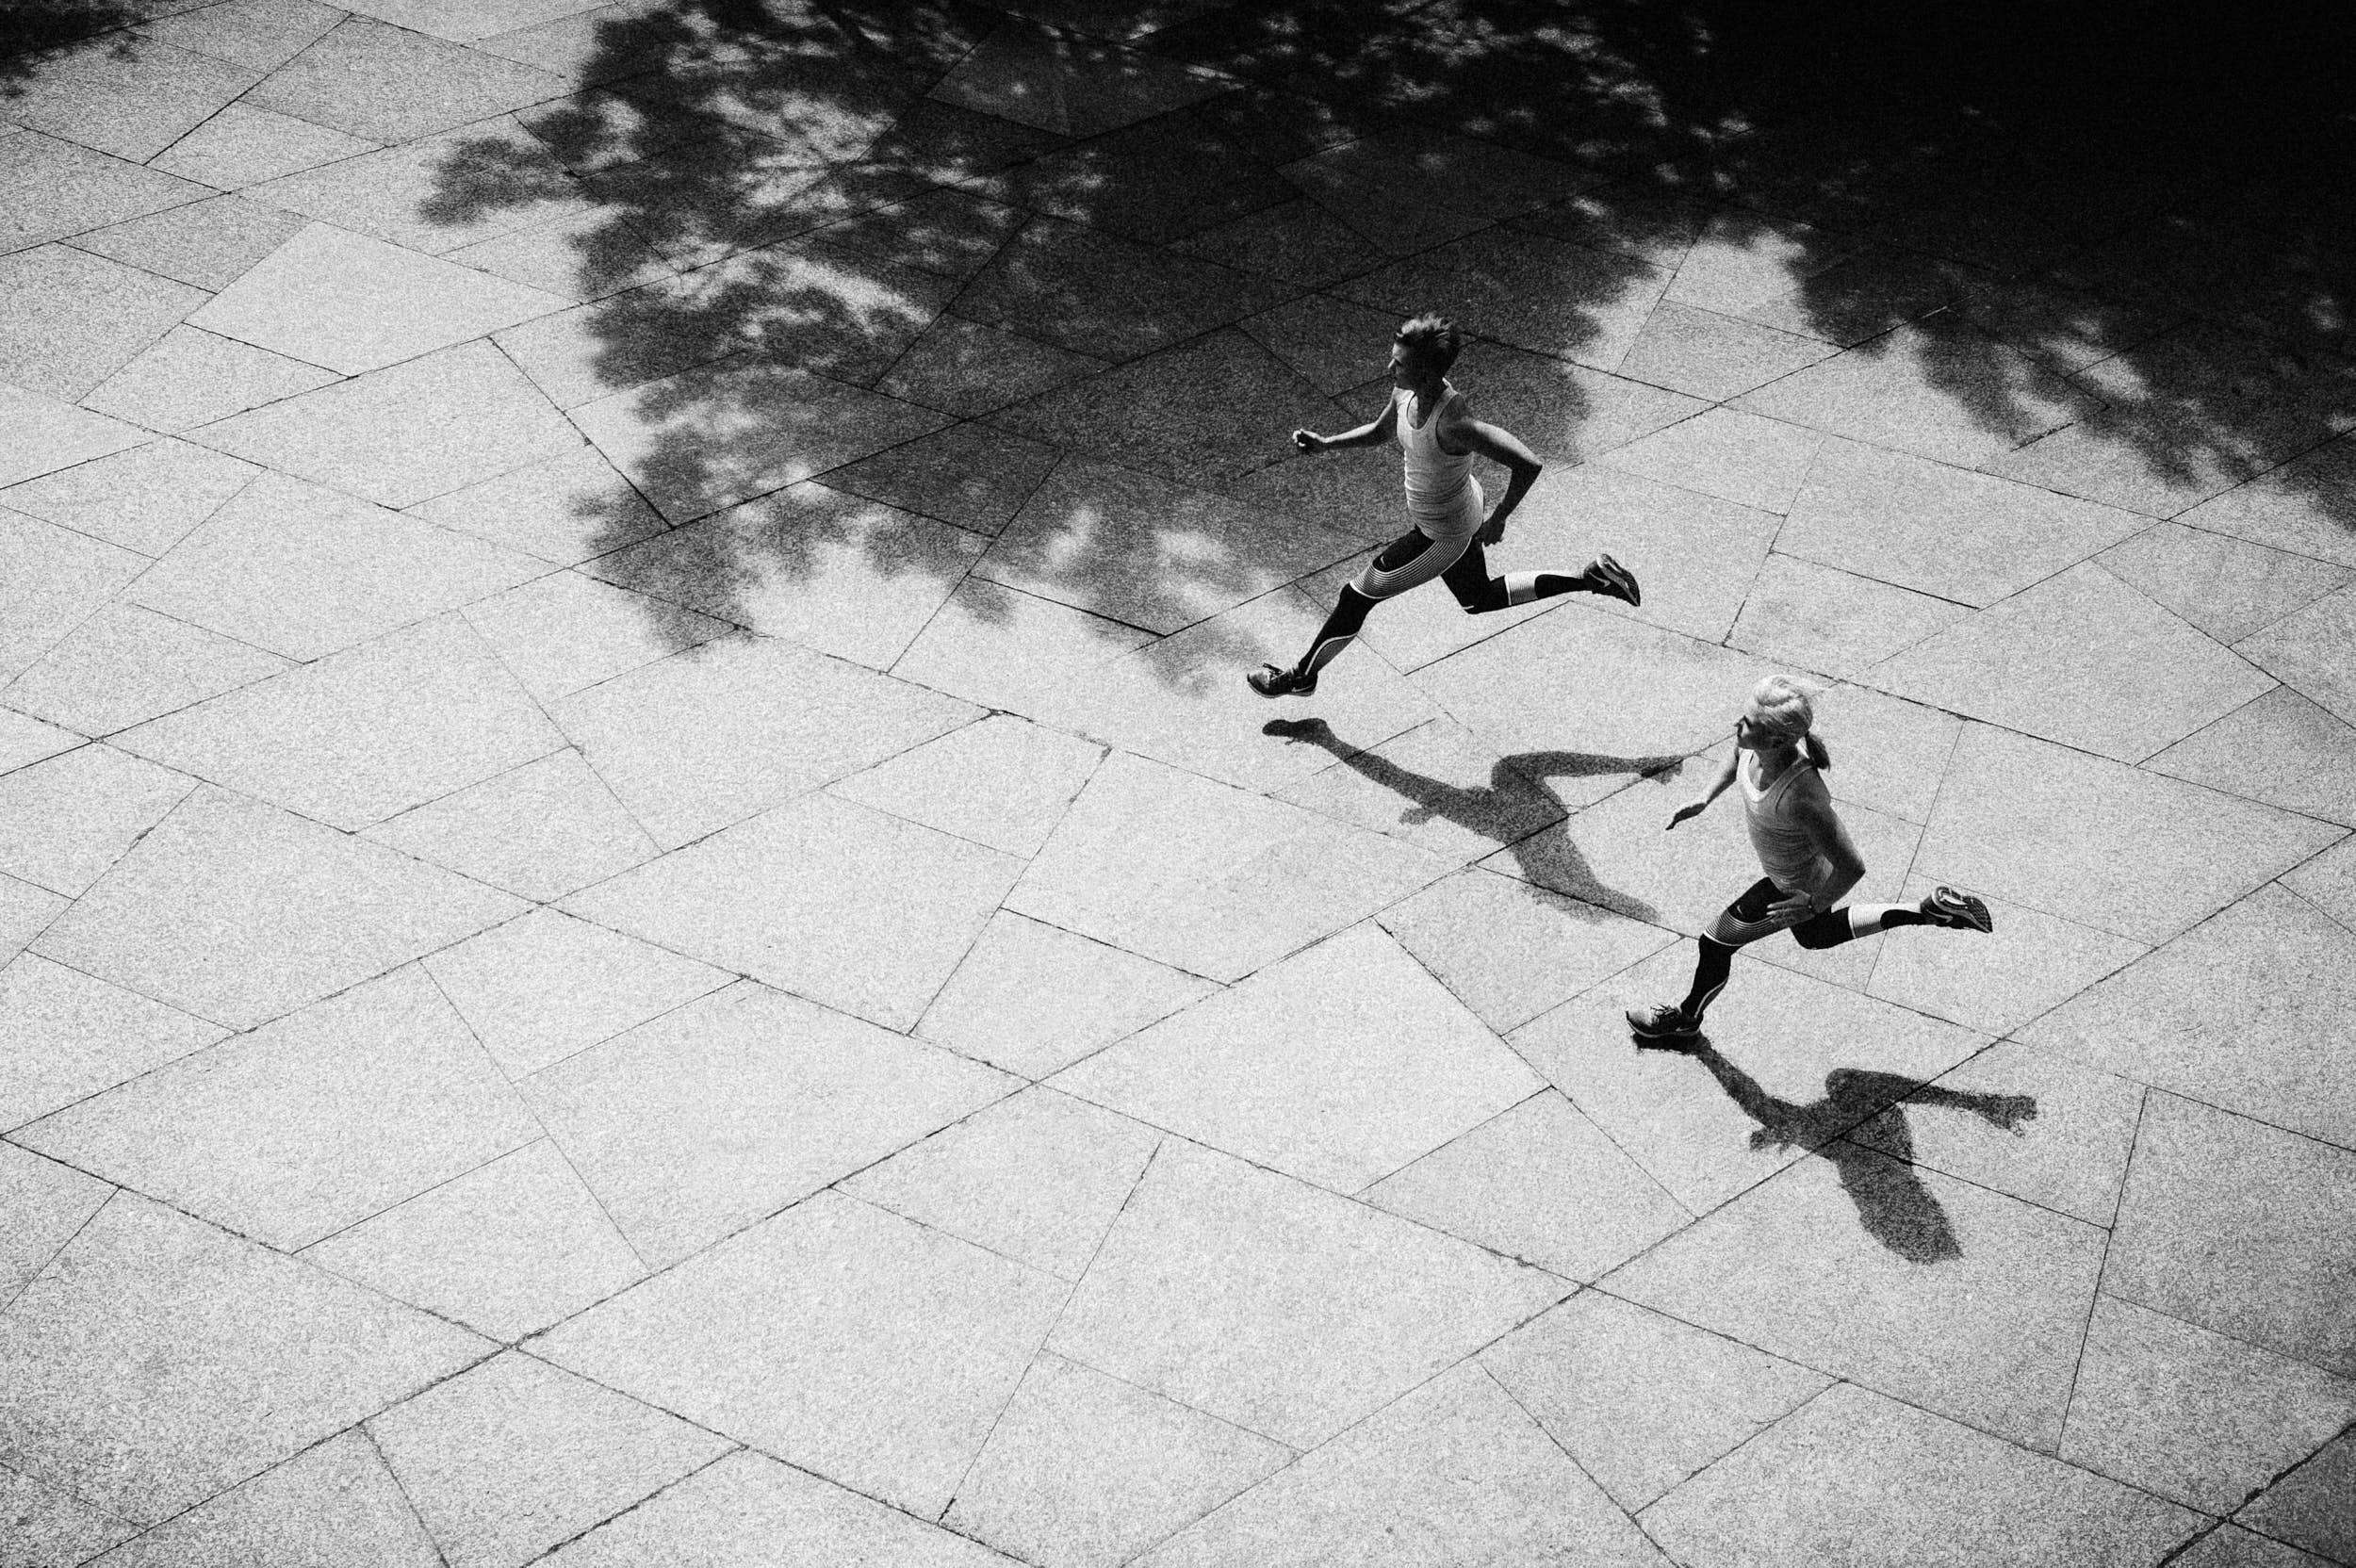 Black and white sport photography: two girls running on marble pavement shot from elevated perspective with strong contrast.